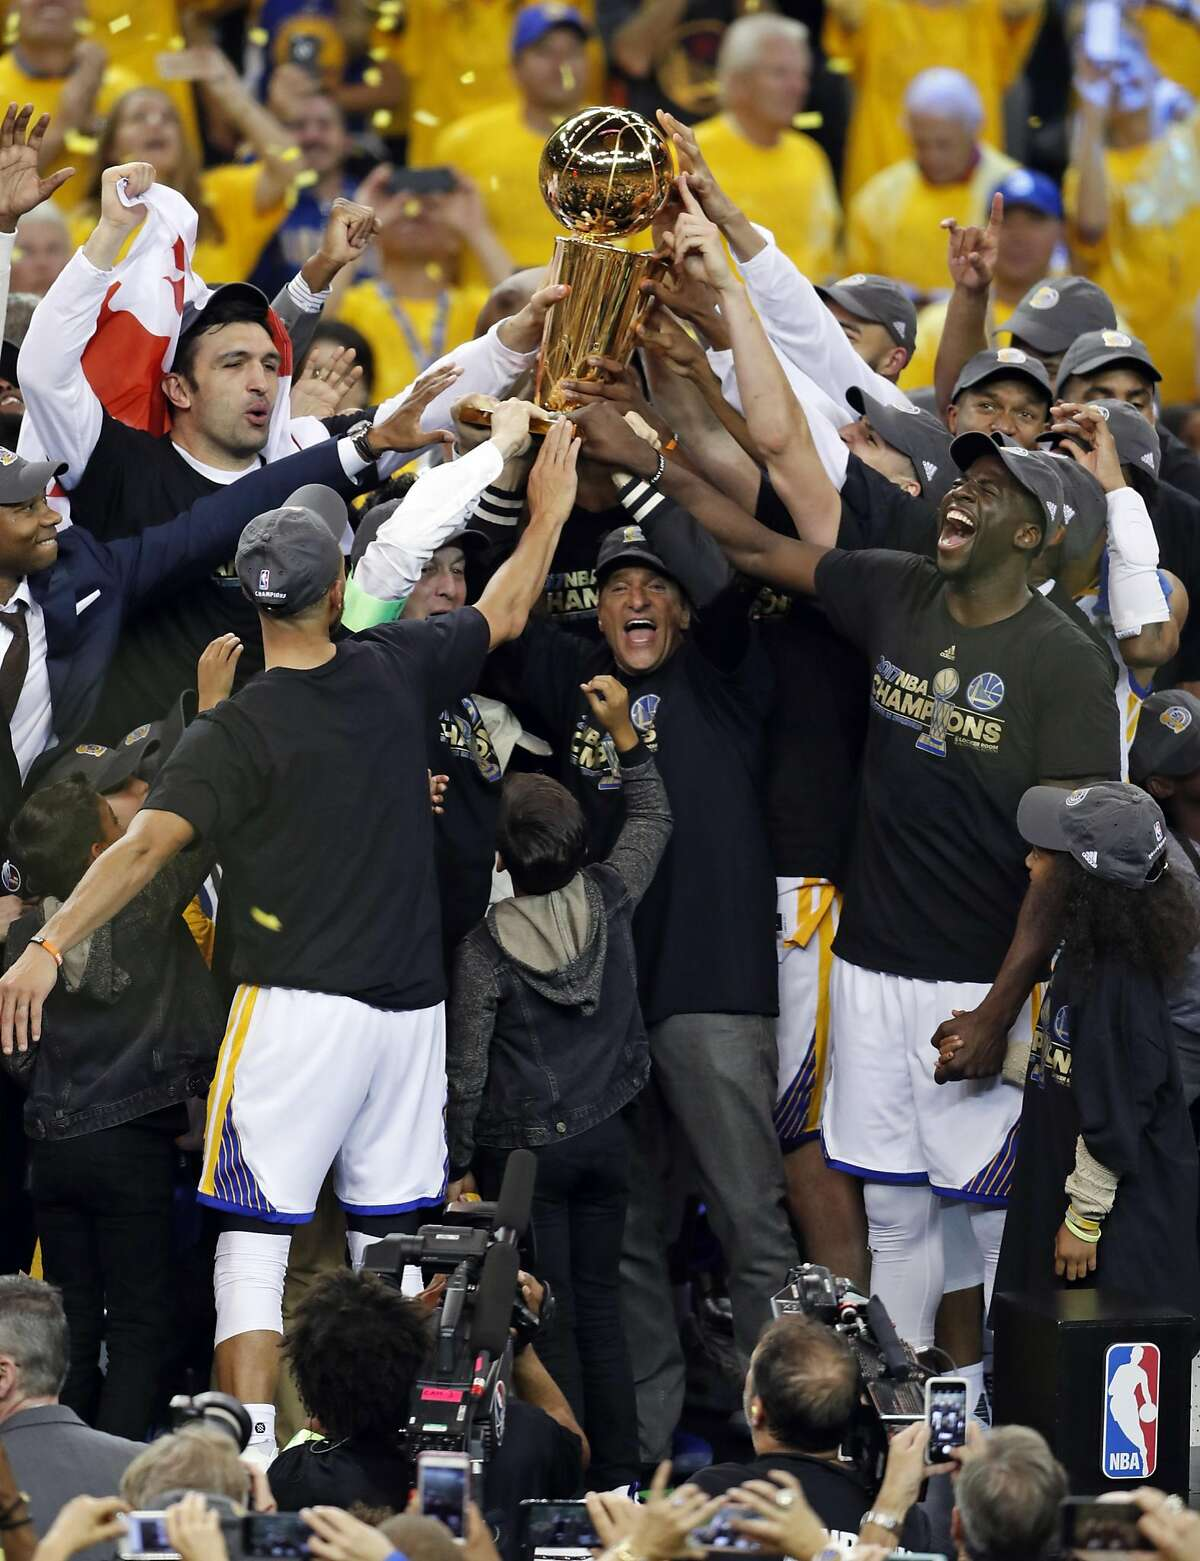 Golden State Warriors co-owner Peter Guber and team celebrate NBA Championship after Warriors'129-120 win over Cleveland Cavaliers in Game 5 of NBA Finals at Oracle Arena in Oakland, Calif., on Monday, June 12, 2017.